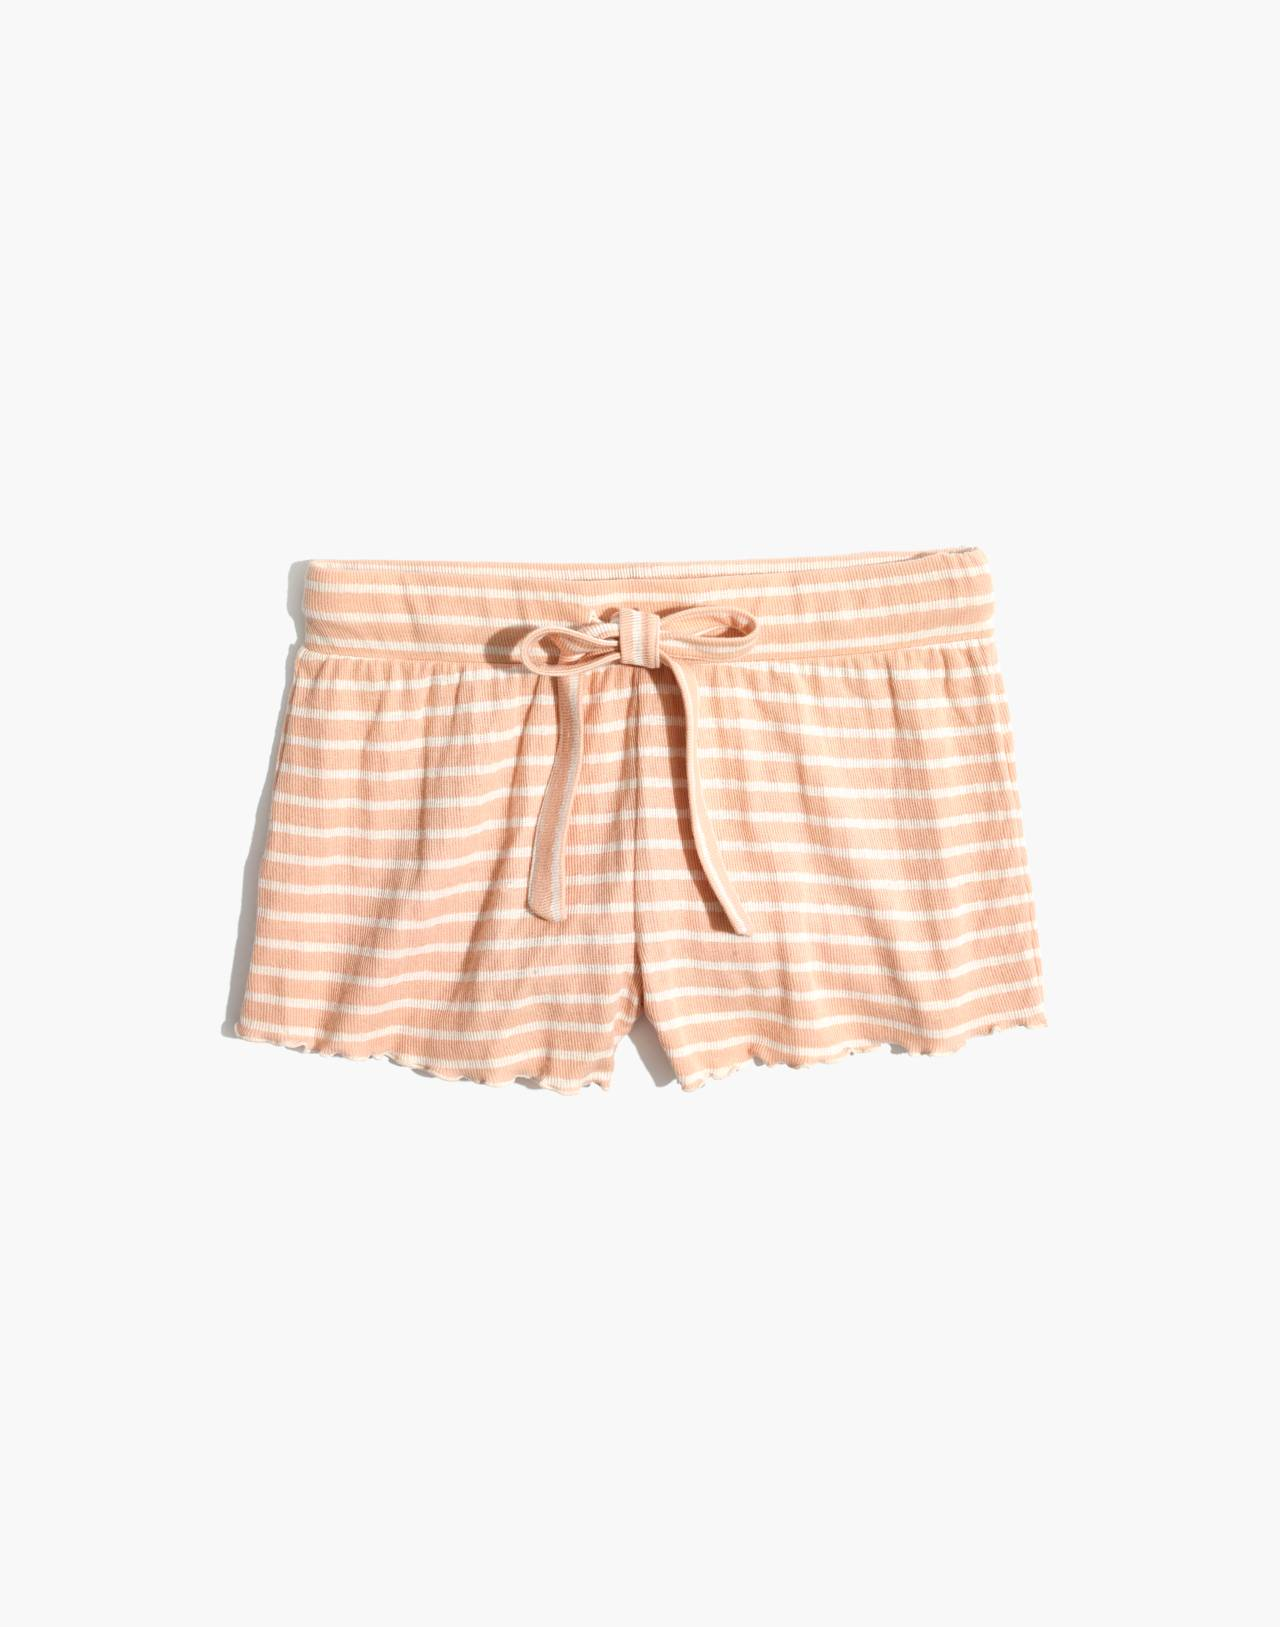 Ruffled Pajama Shorts in Stripe in voile pink image 4